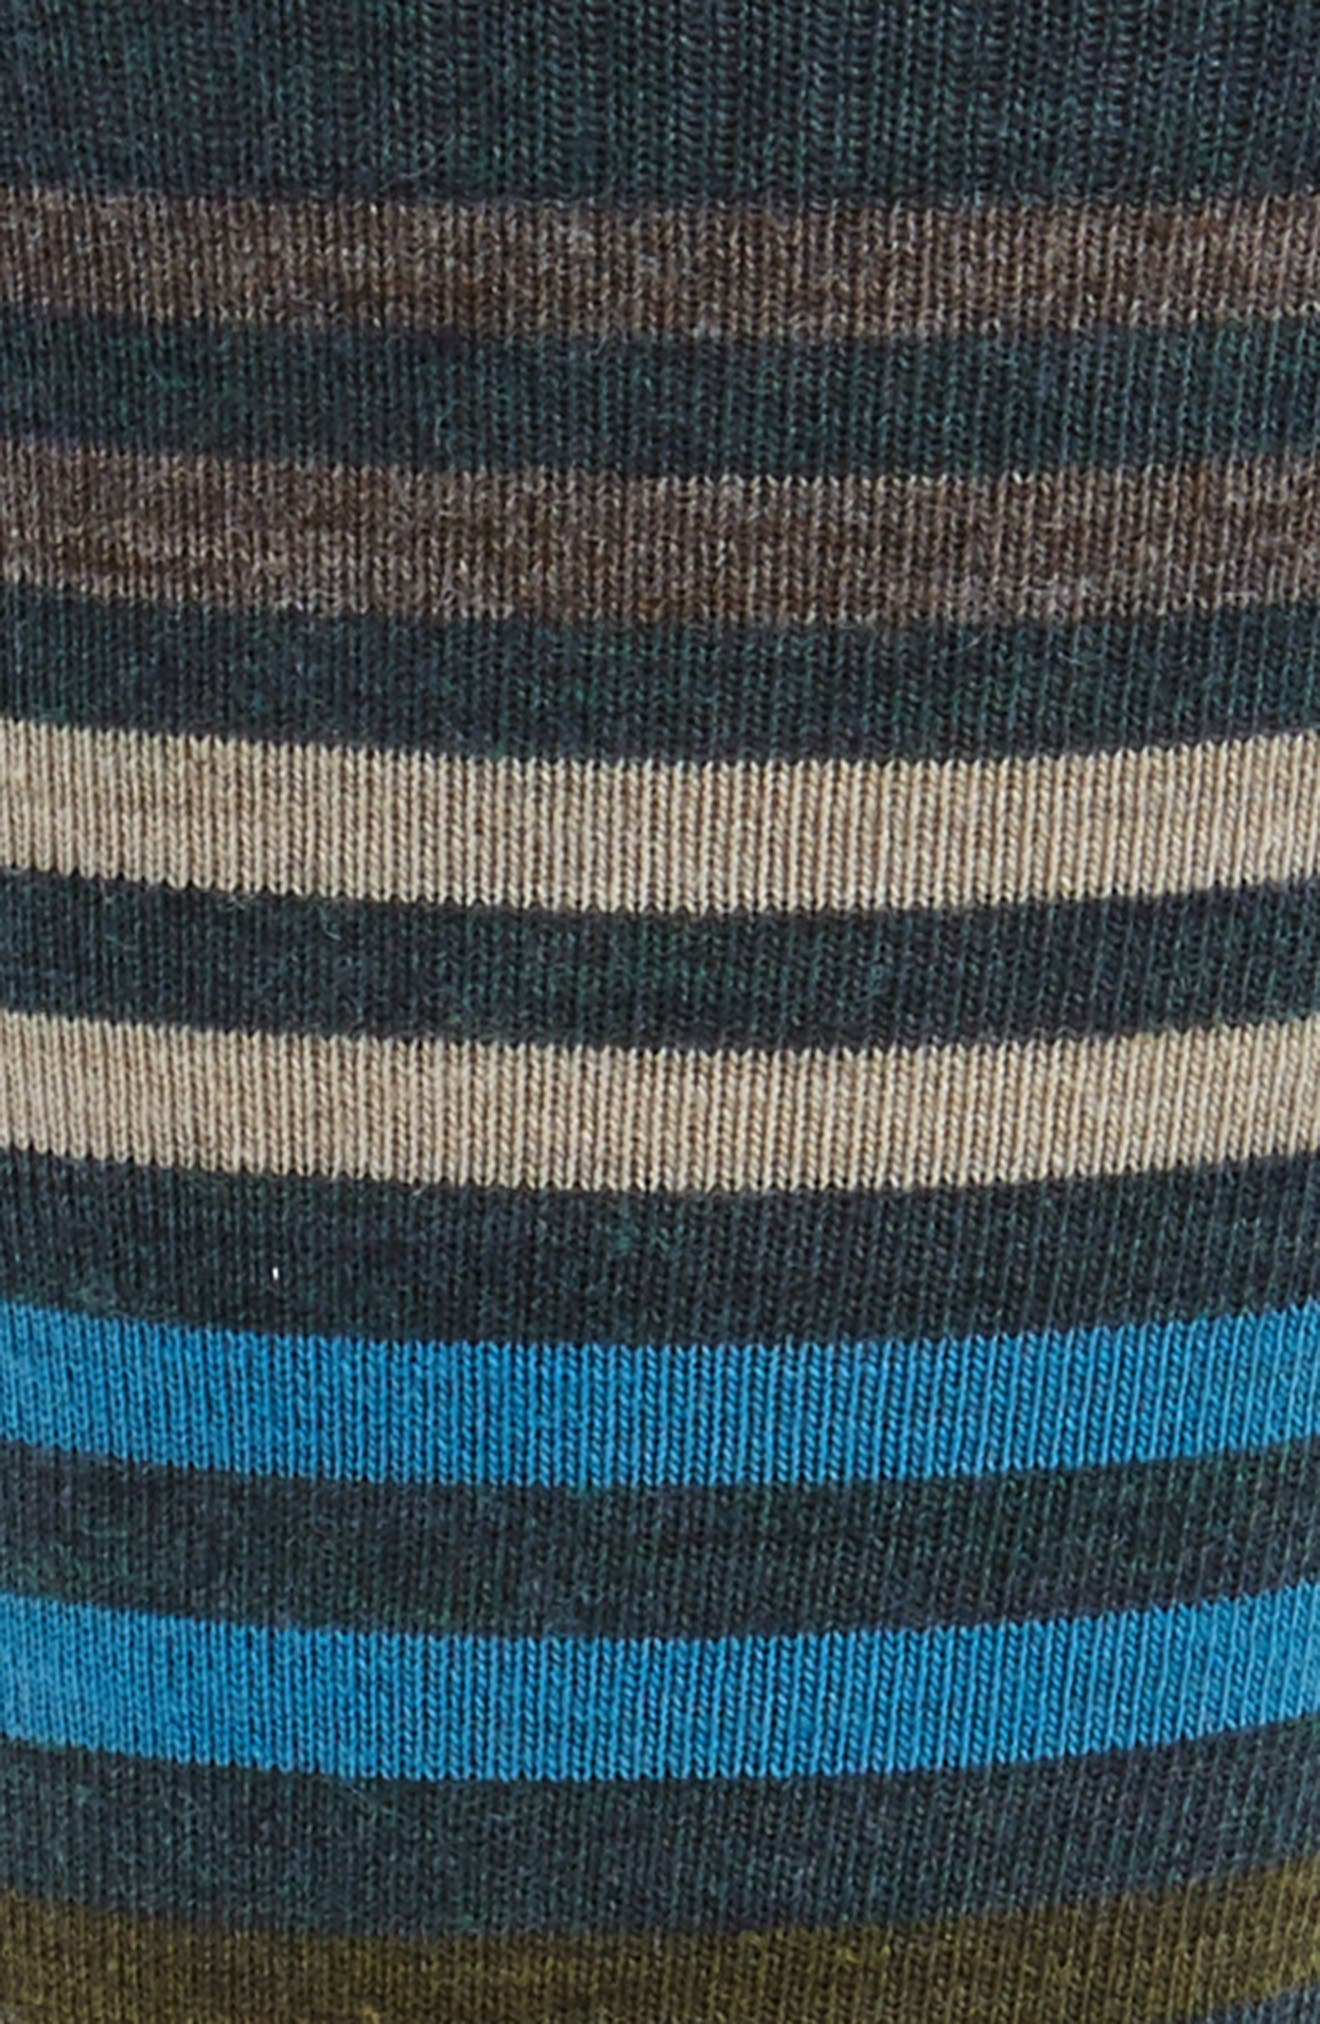 Alternate Image 2  - Smartwool 'Spruce Street' Stripe Merino Wool Blend Socks